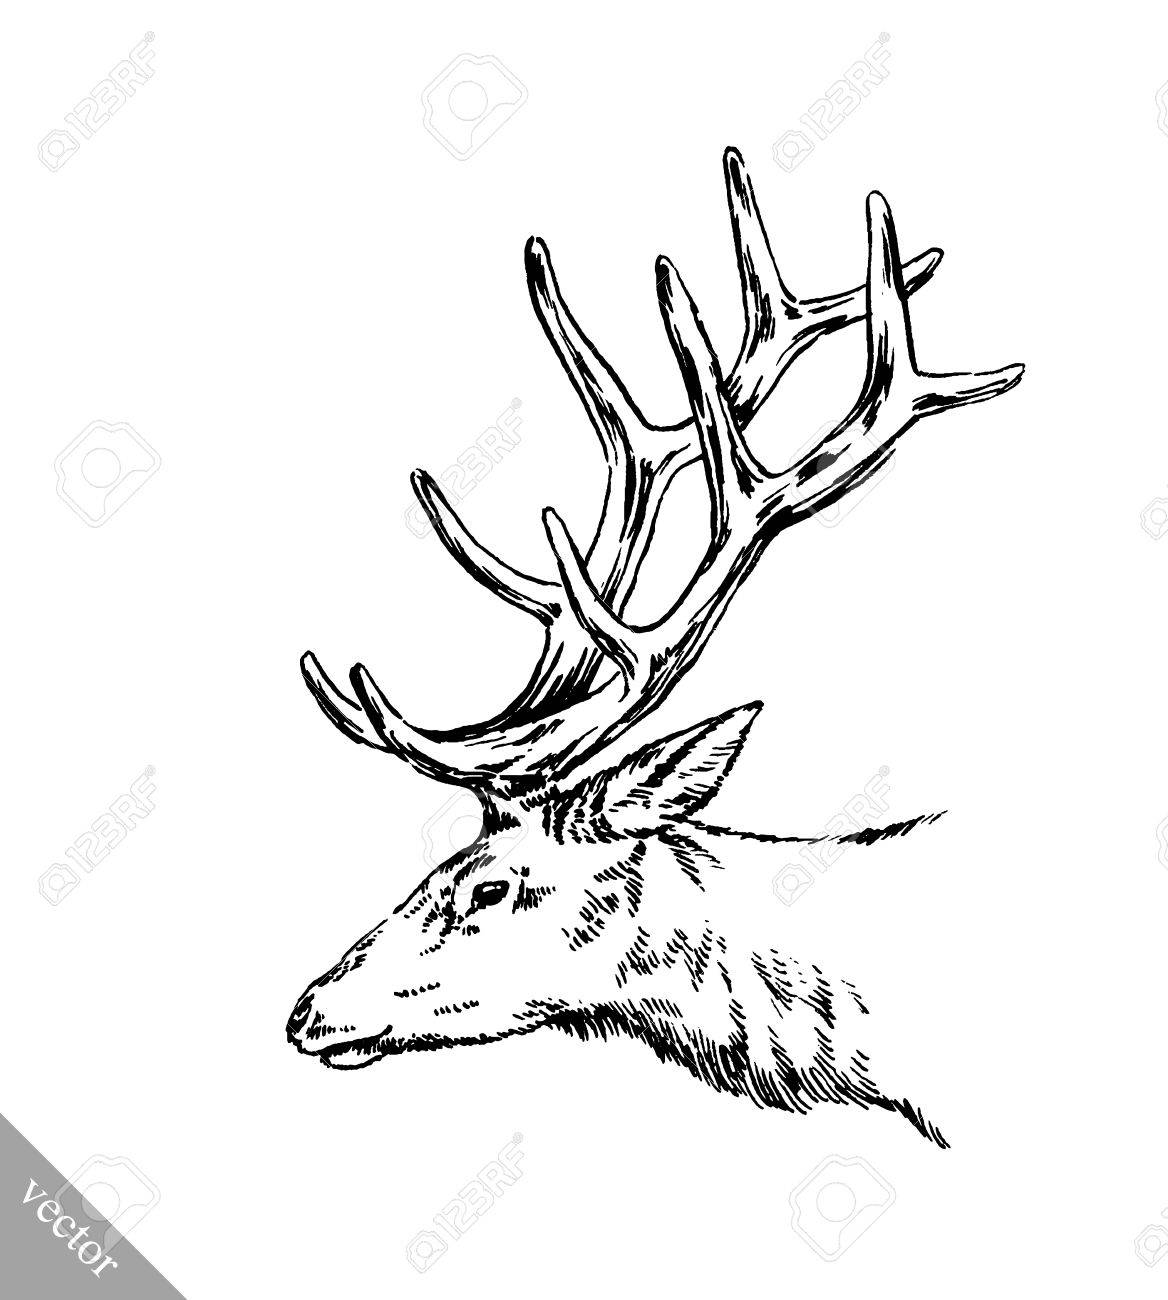 1168x1300 Black And White Brush Painting Vector Ink Draw Isolated Deer